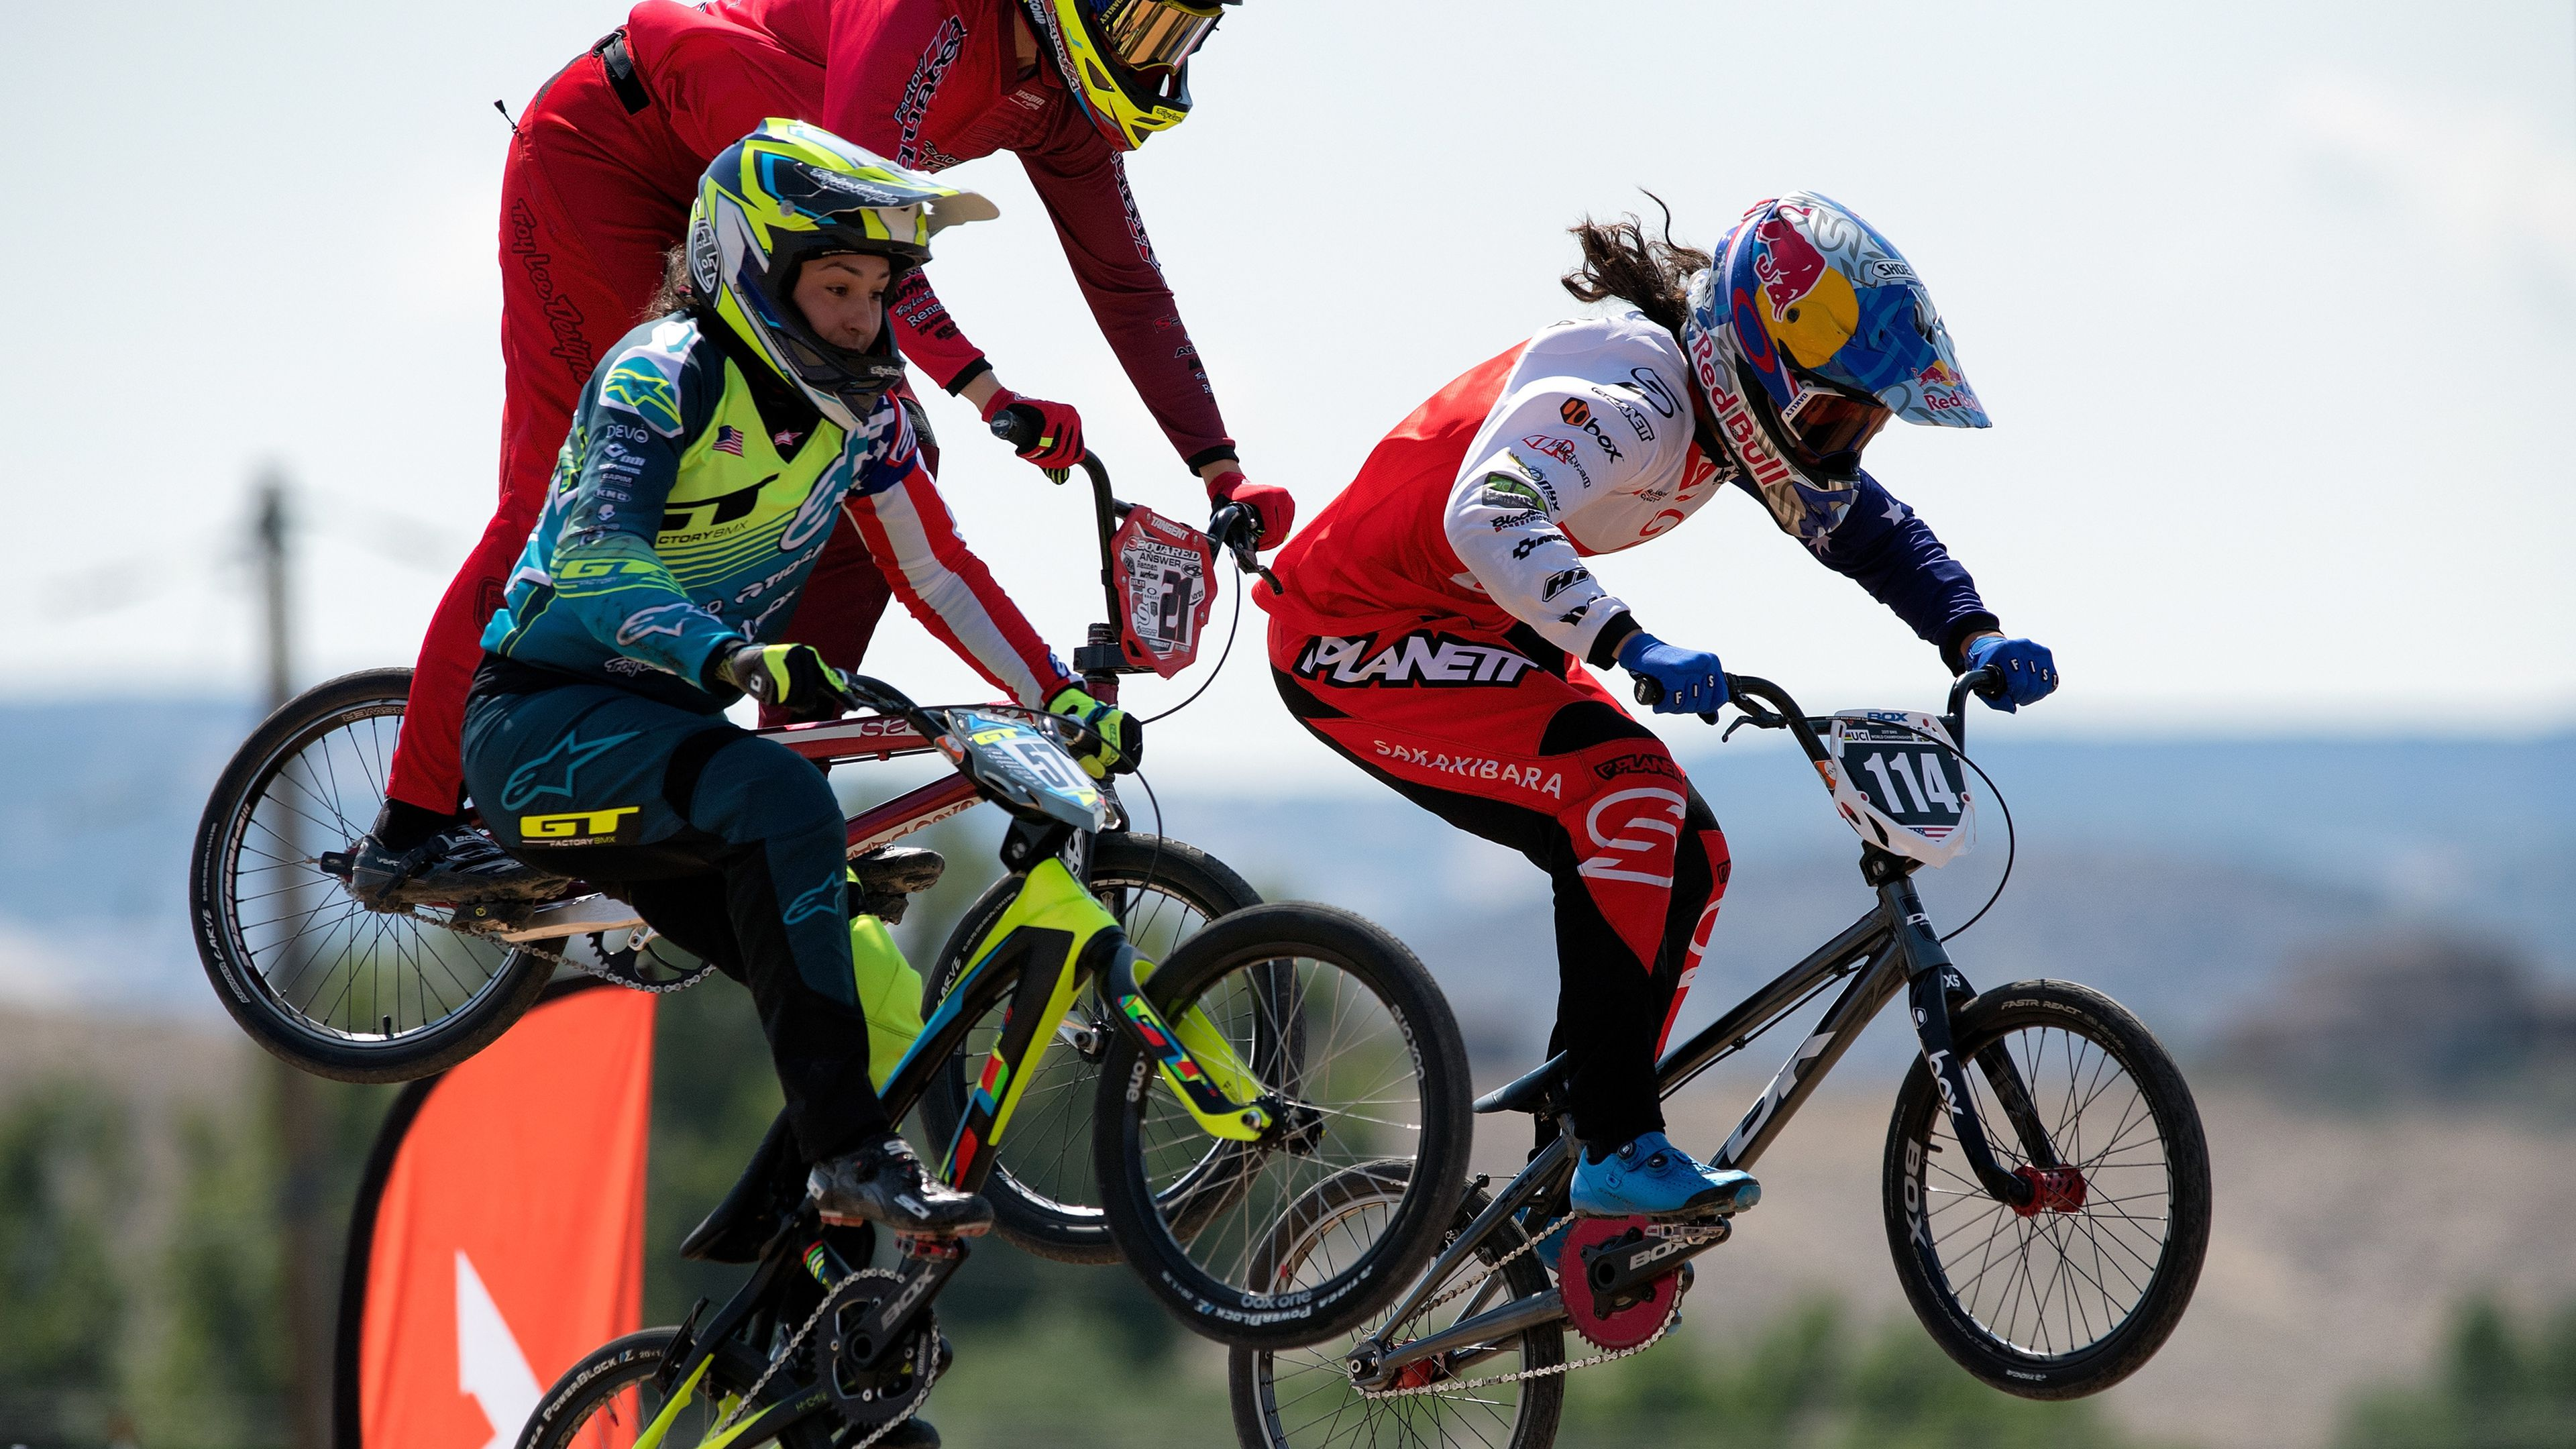 Tokyo Olympics 2021: Australian BMX racer has brother on her mind after making semis